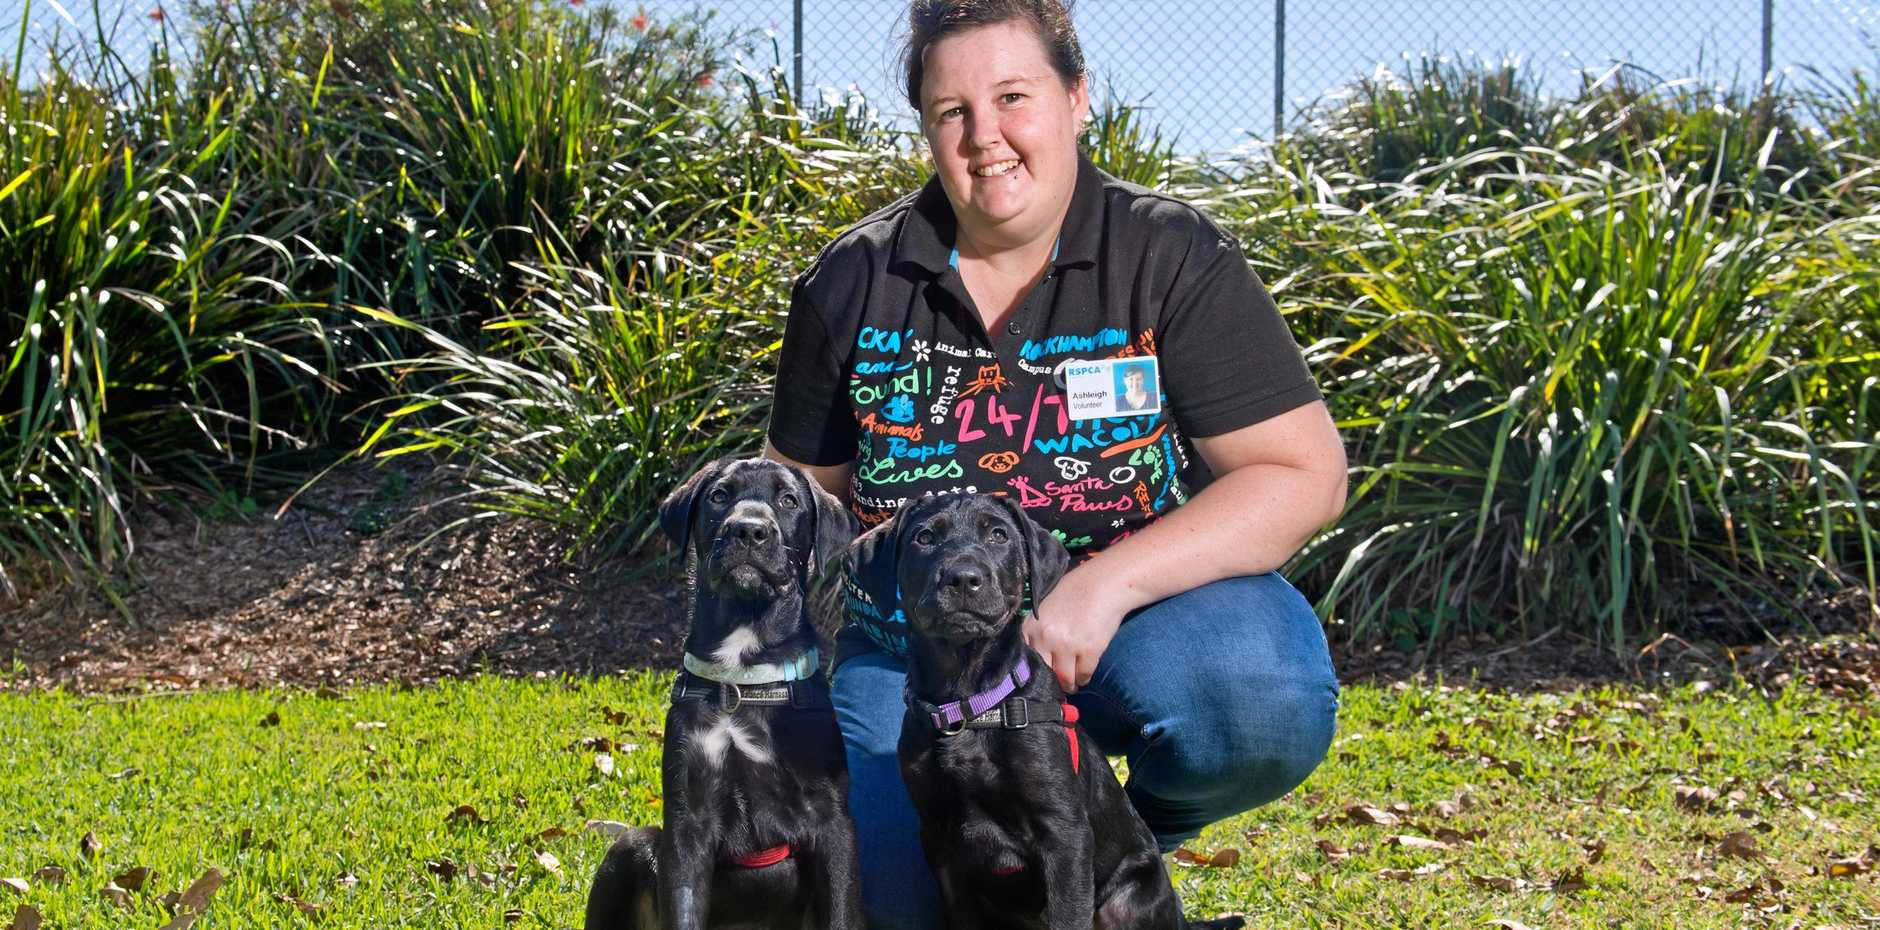 RSPCA volunteer Ashleigh Sunah with brothers Achilles and Shamus, who are available for adoption at the RSPCA.